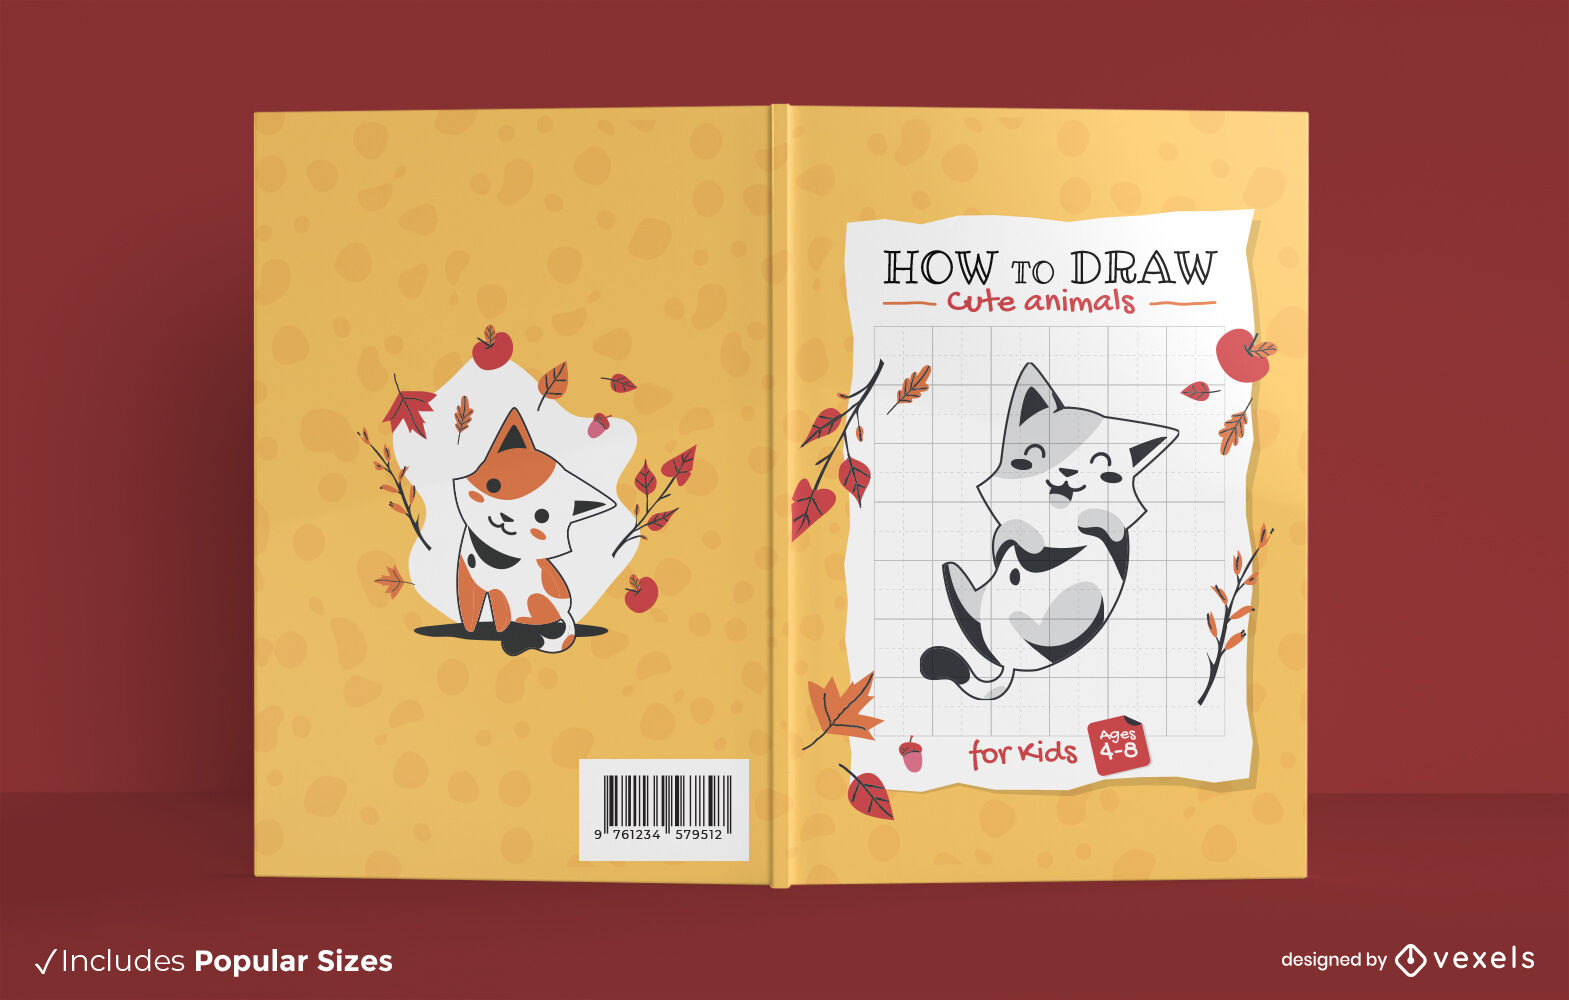 Cute animal drawing book cover design